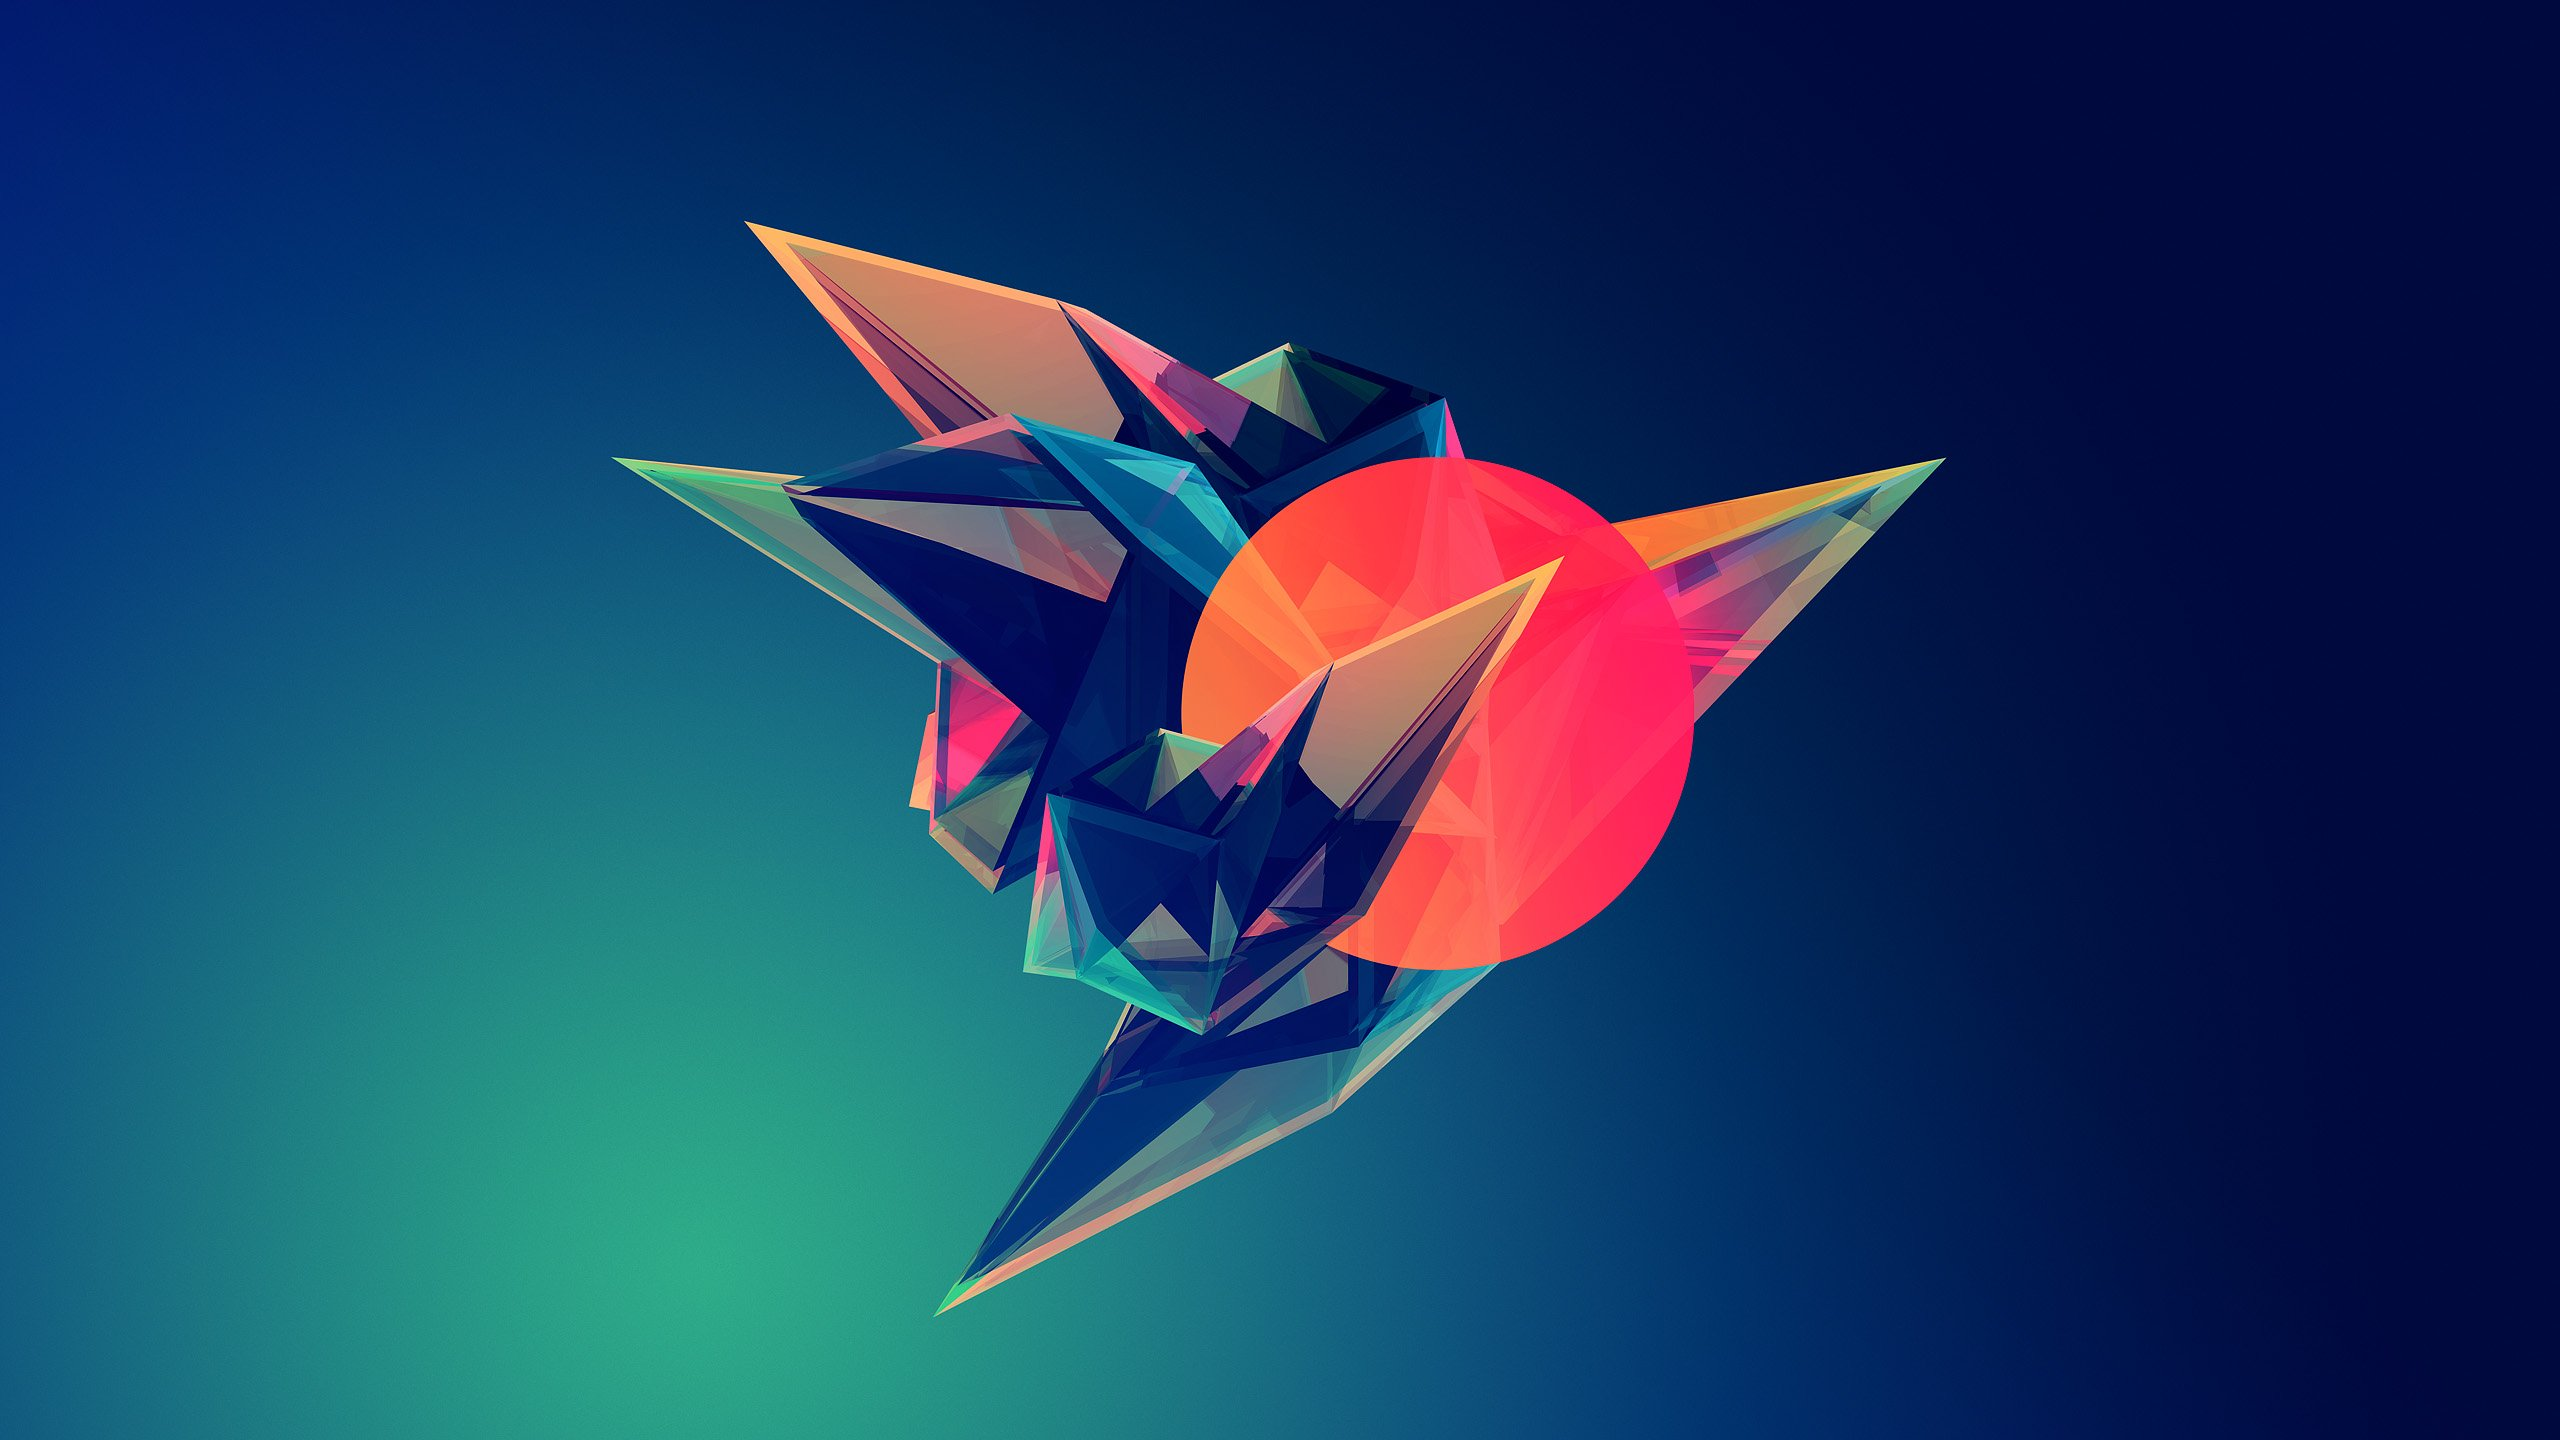 low poly minimalism wallpaper